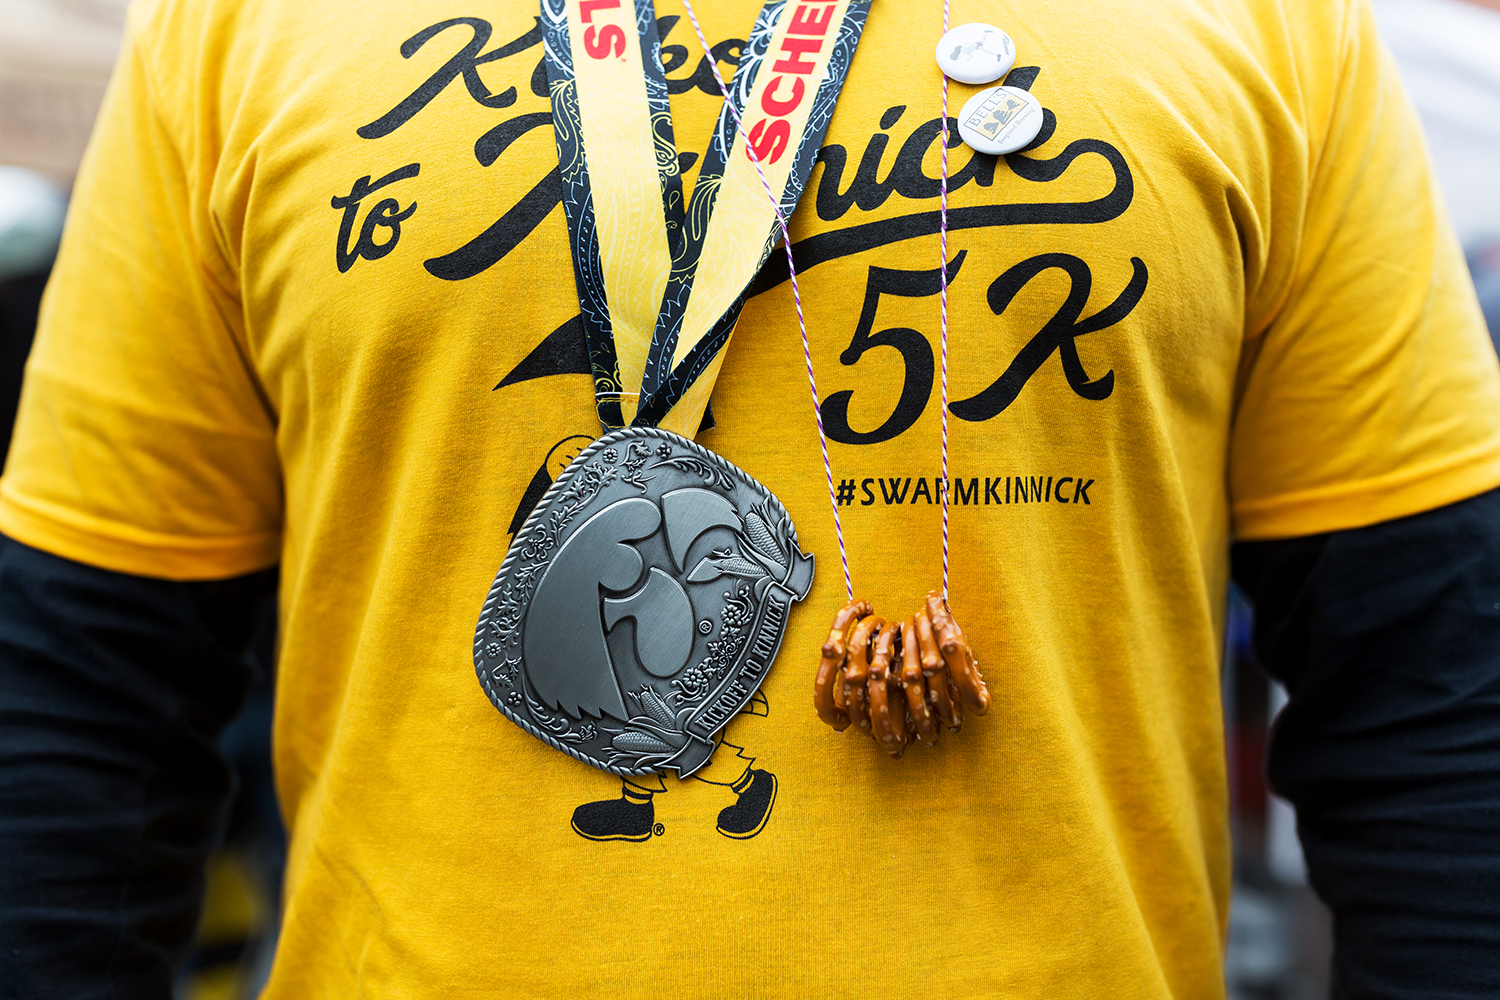 A participant in the Kickoff of Kinnick 5k race sports a medal and pretzel necklace at the Northside Oktoberfest in Iowa City on Saturday, Sep. 29, 2018.